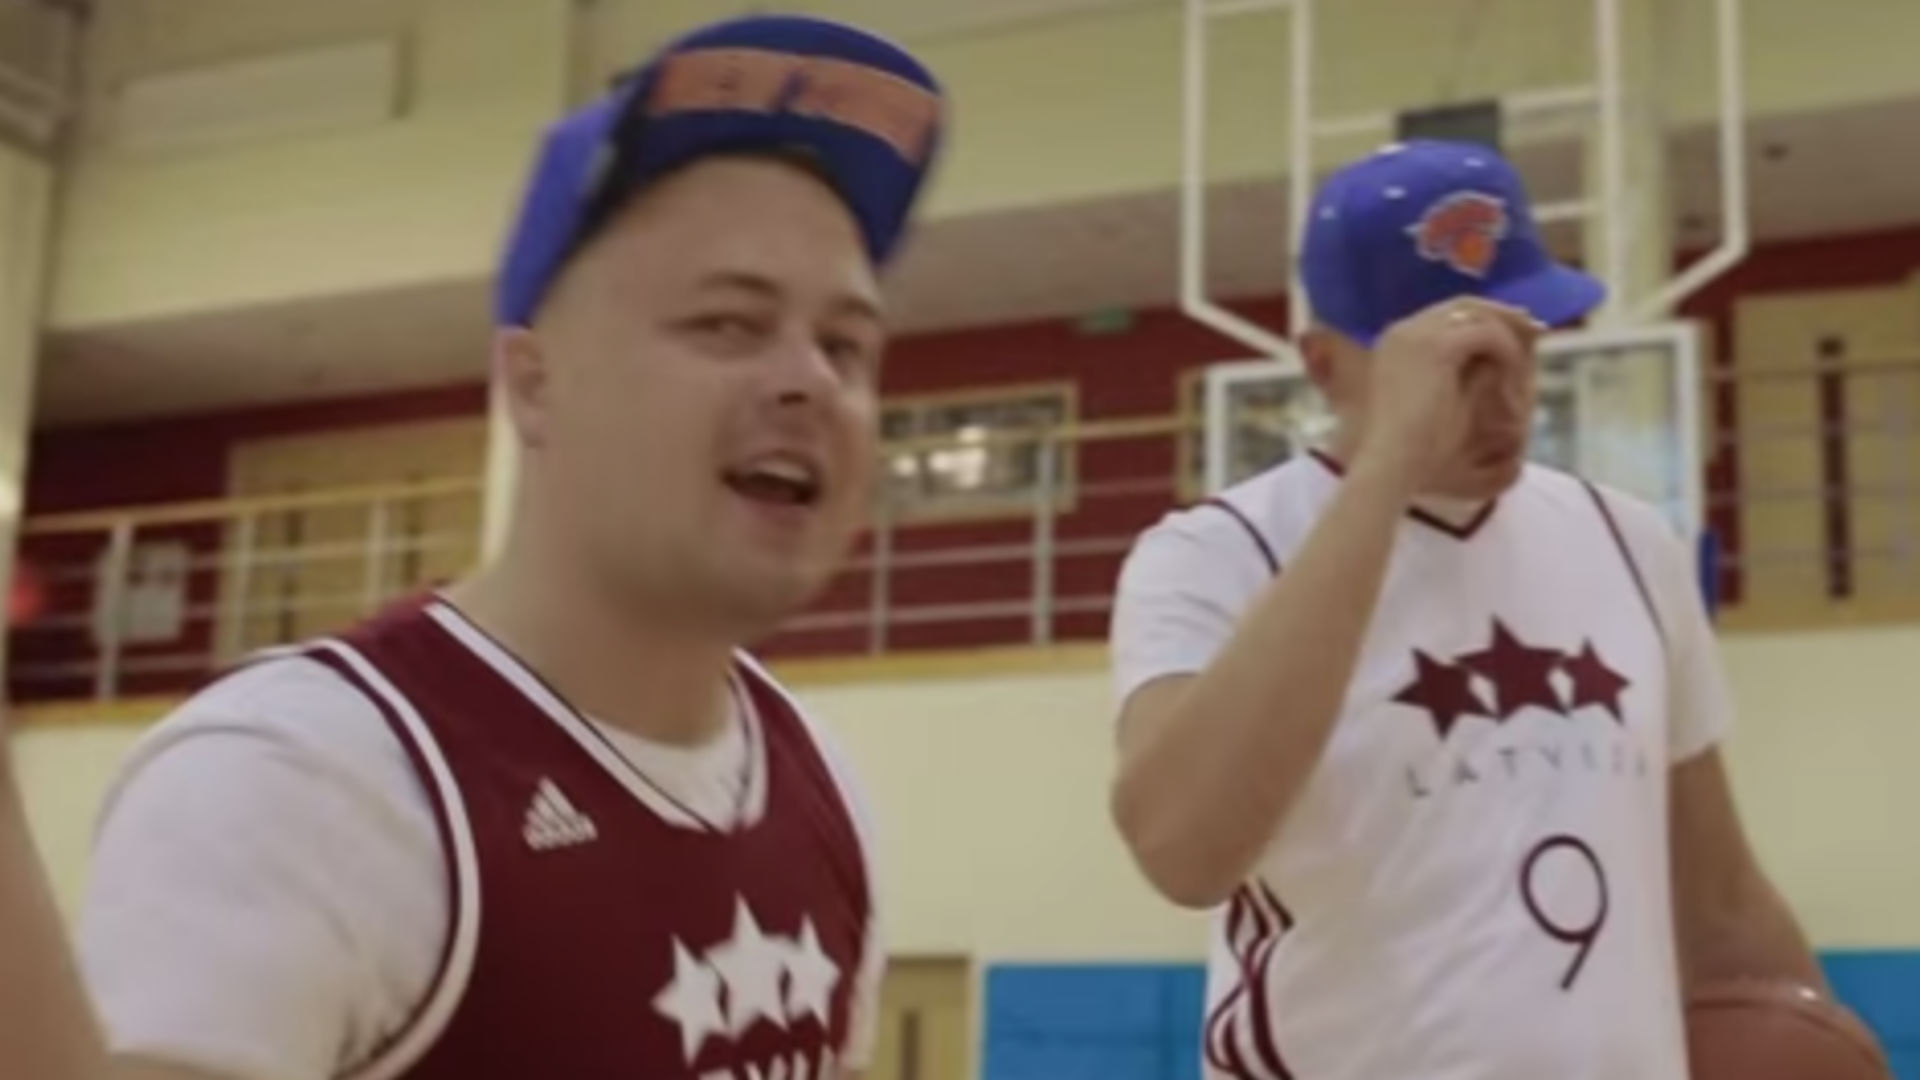 Latvian rap duo makes new anthem for Kristaps Porzingis